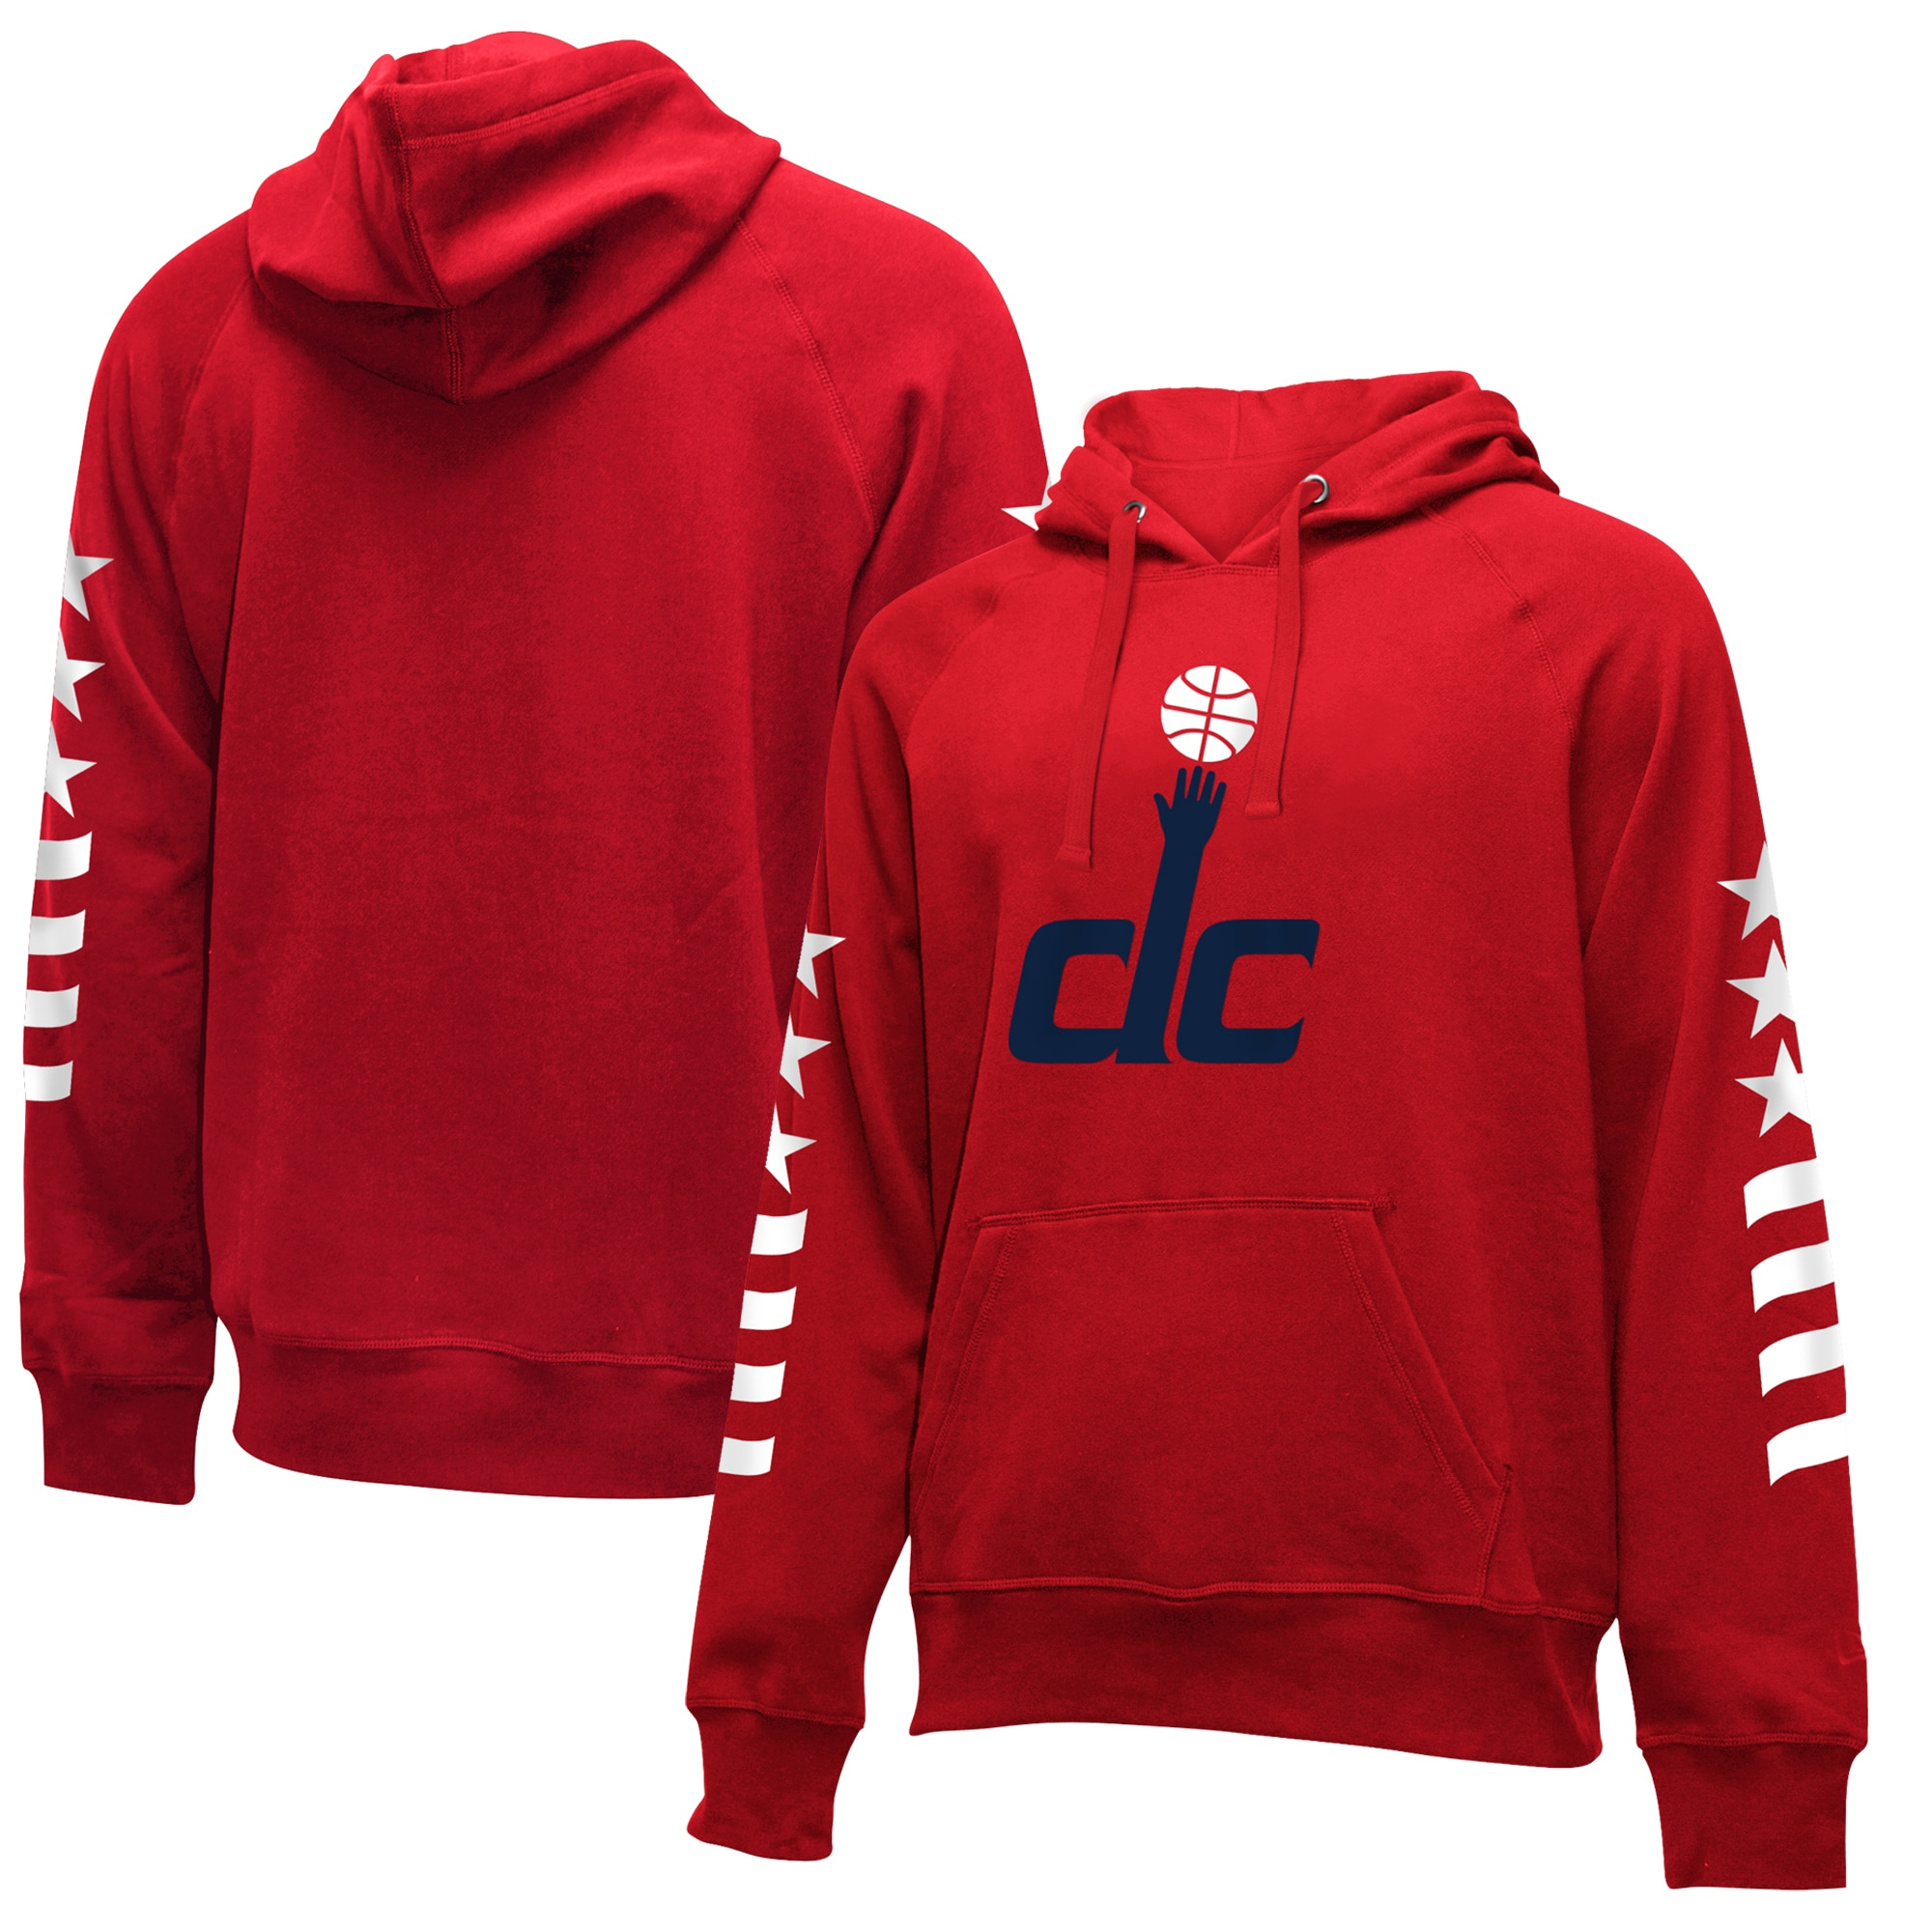 Washington Wizards New Era 2019/20 City Edition Pullover Hoodie - Red